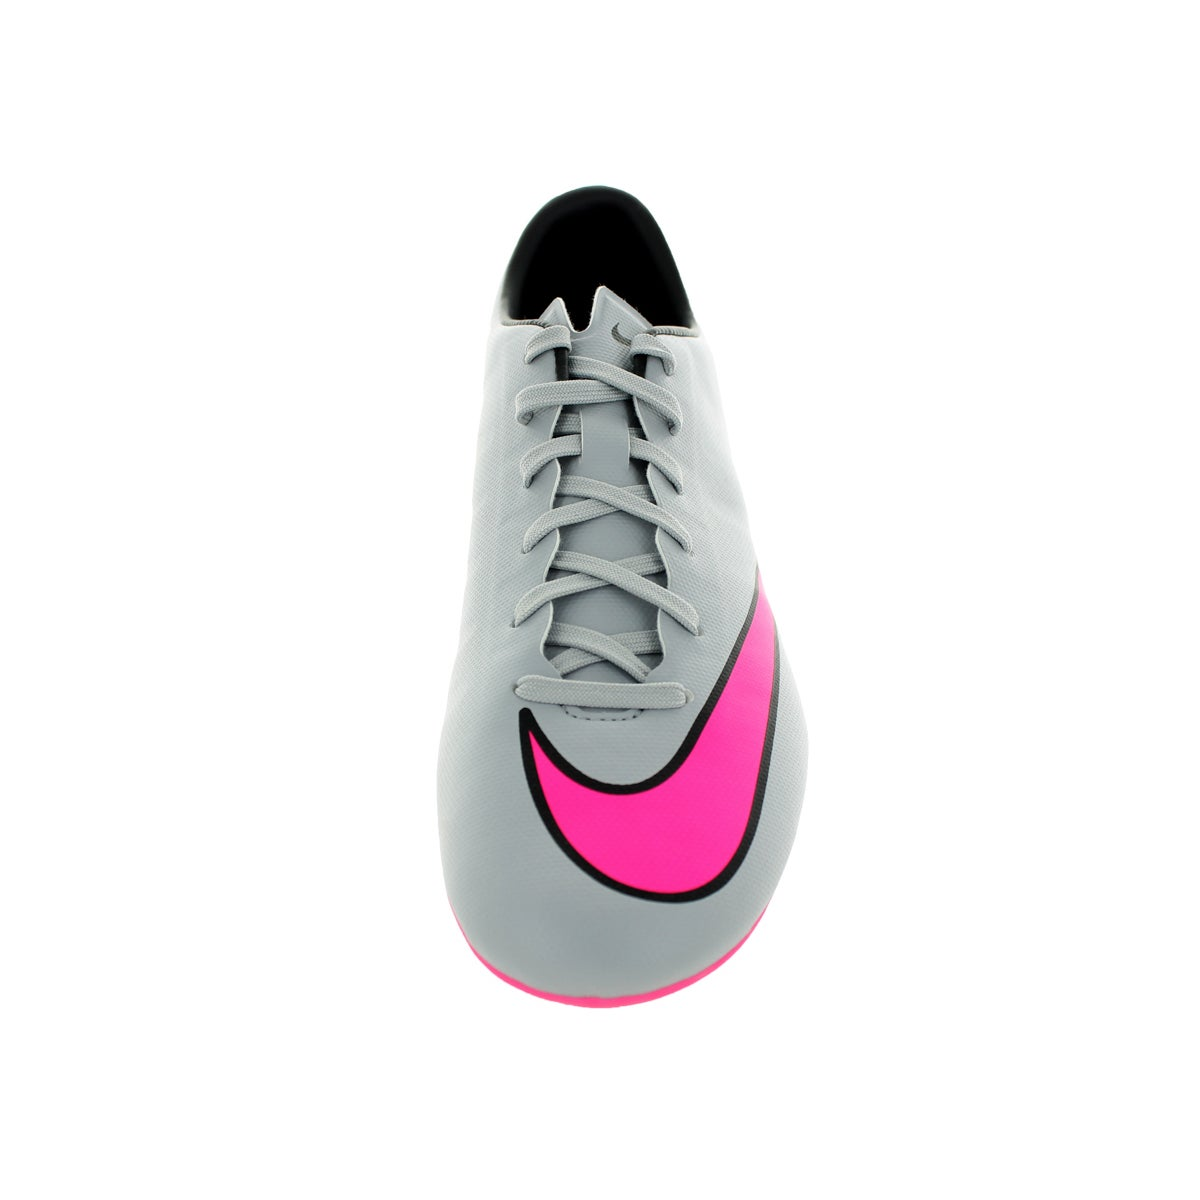 01963d6ae Shop Nike Men s Mercurial Victory V Fg Wolf Grey Hyper Pink Black Black Soccer  Cleat - Free Shipping Today - Overstock - 12330798